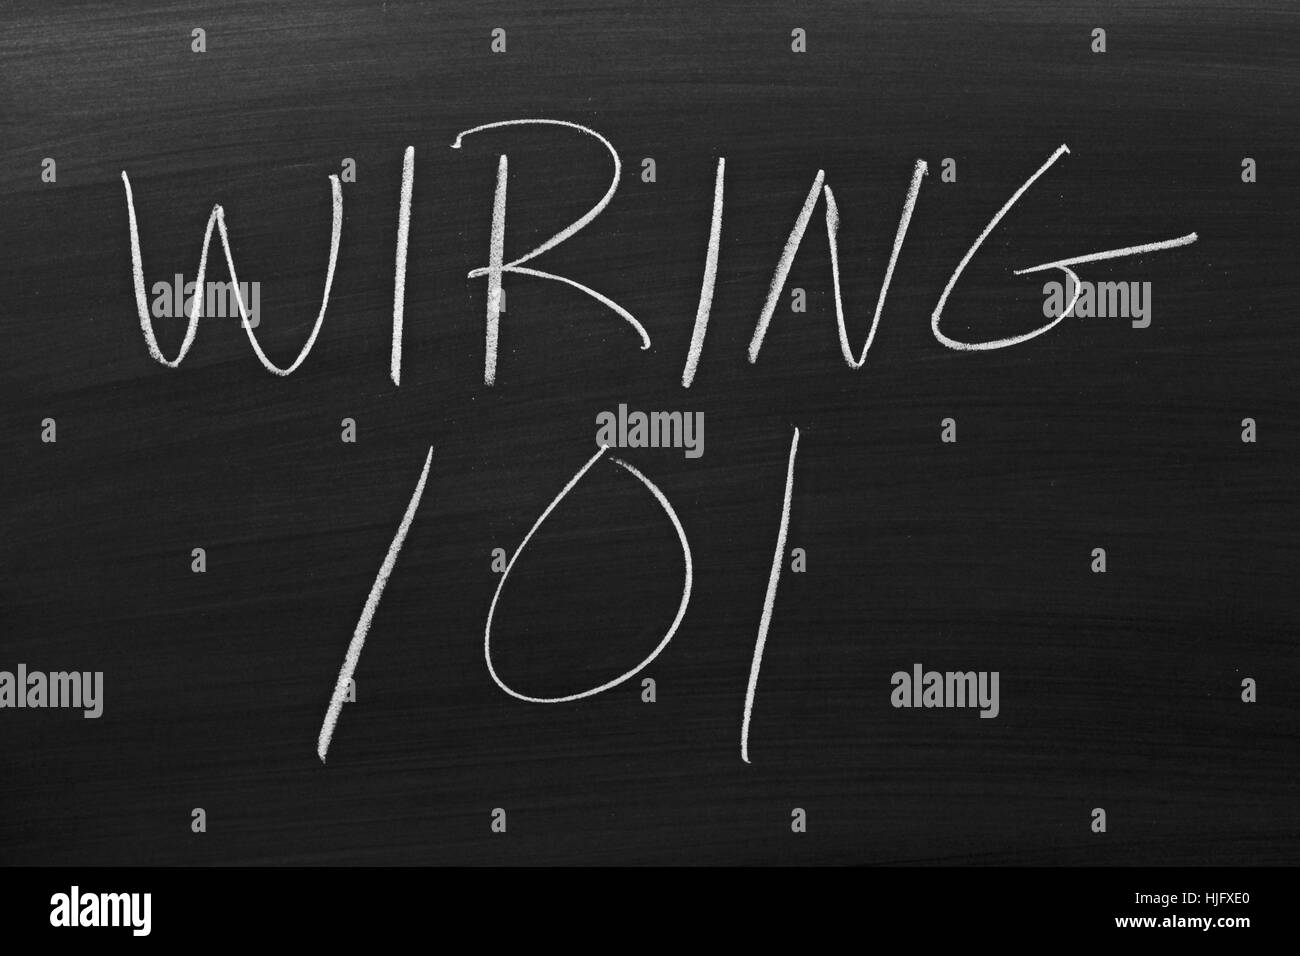 Basic Wiring Stock Photos Images Alamy 101 The Words On A Blackboard In Chalk Image